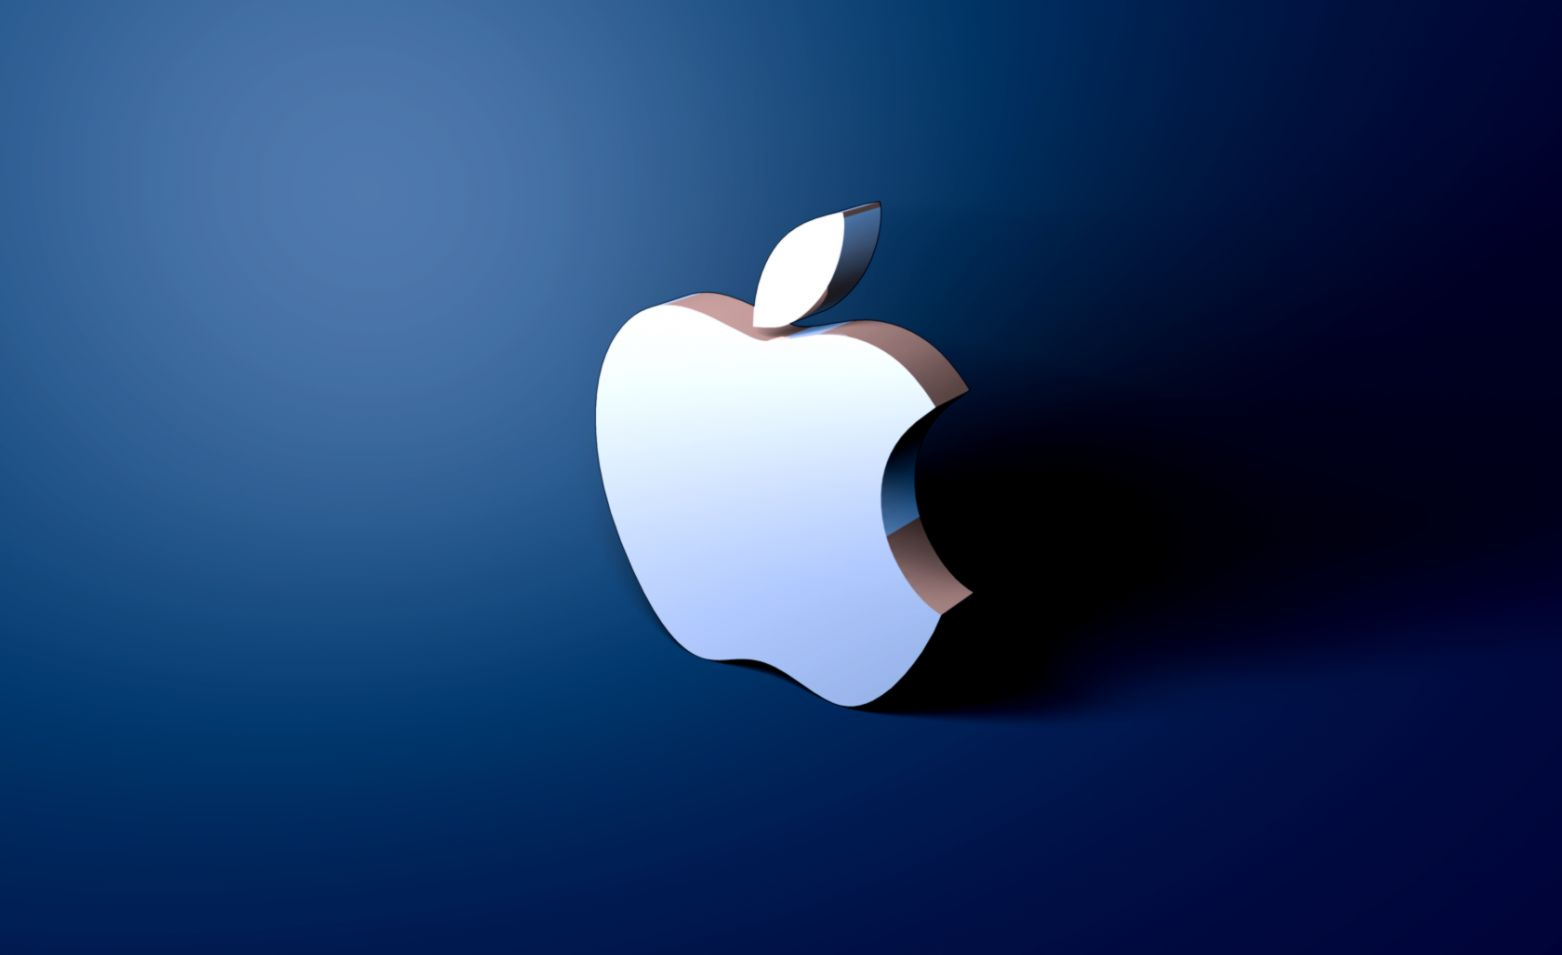 View Original Size Colorful Apple HD Desktop Wallpaper Widescreen High Definition Image Source From This